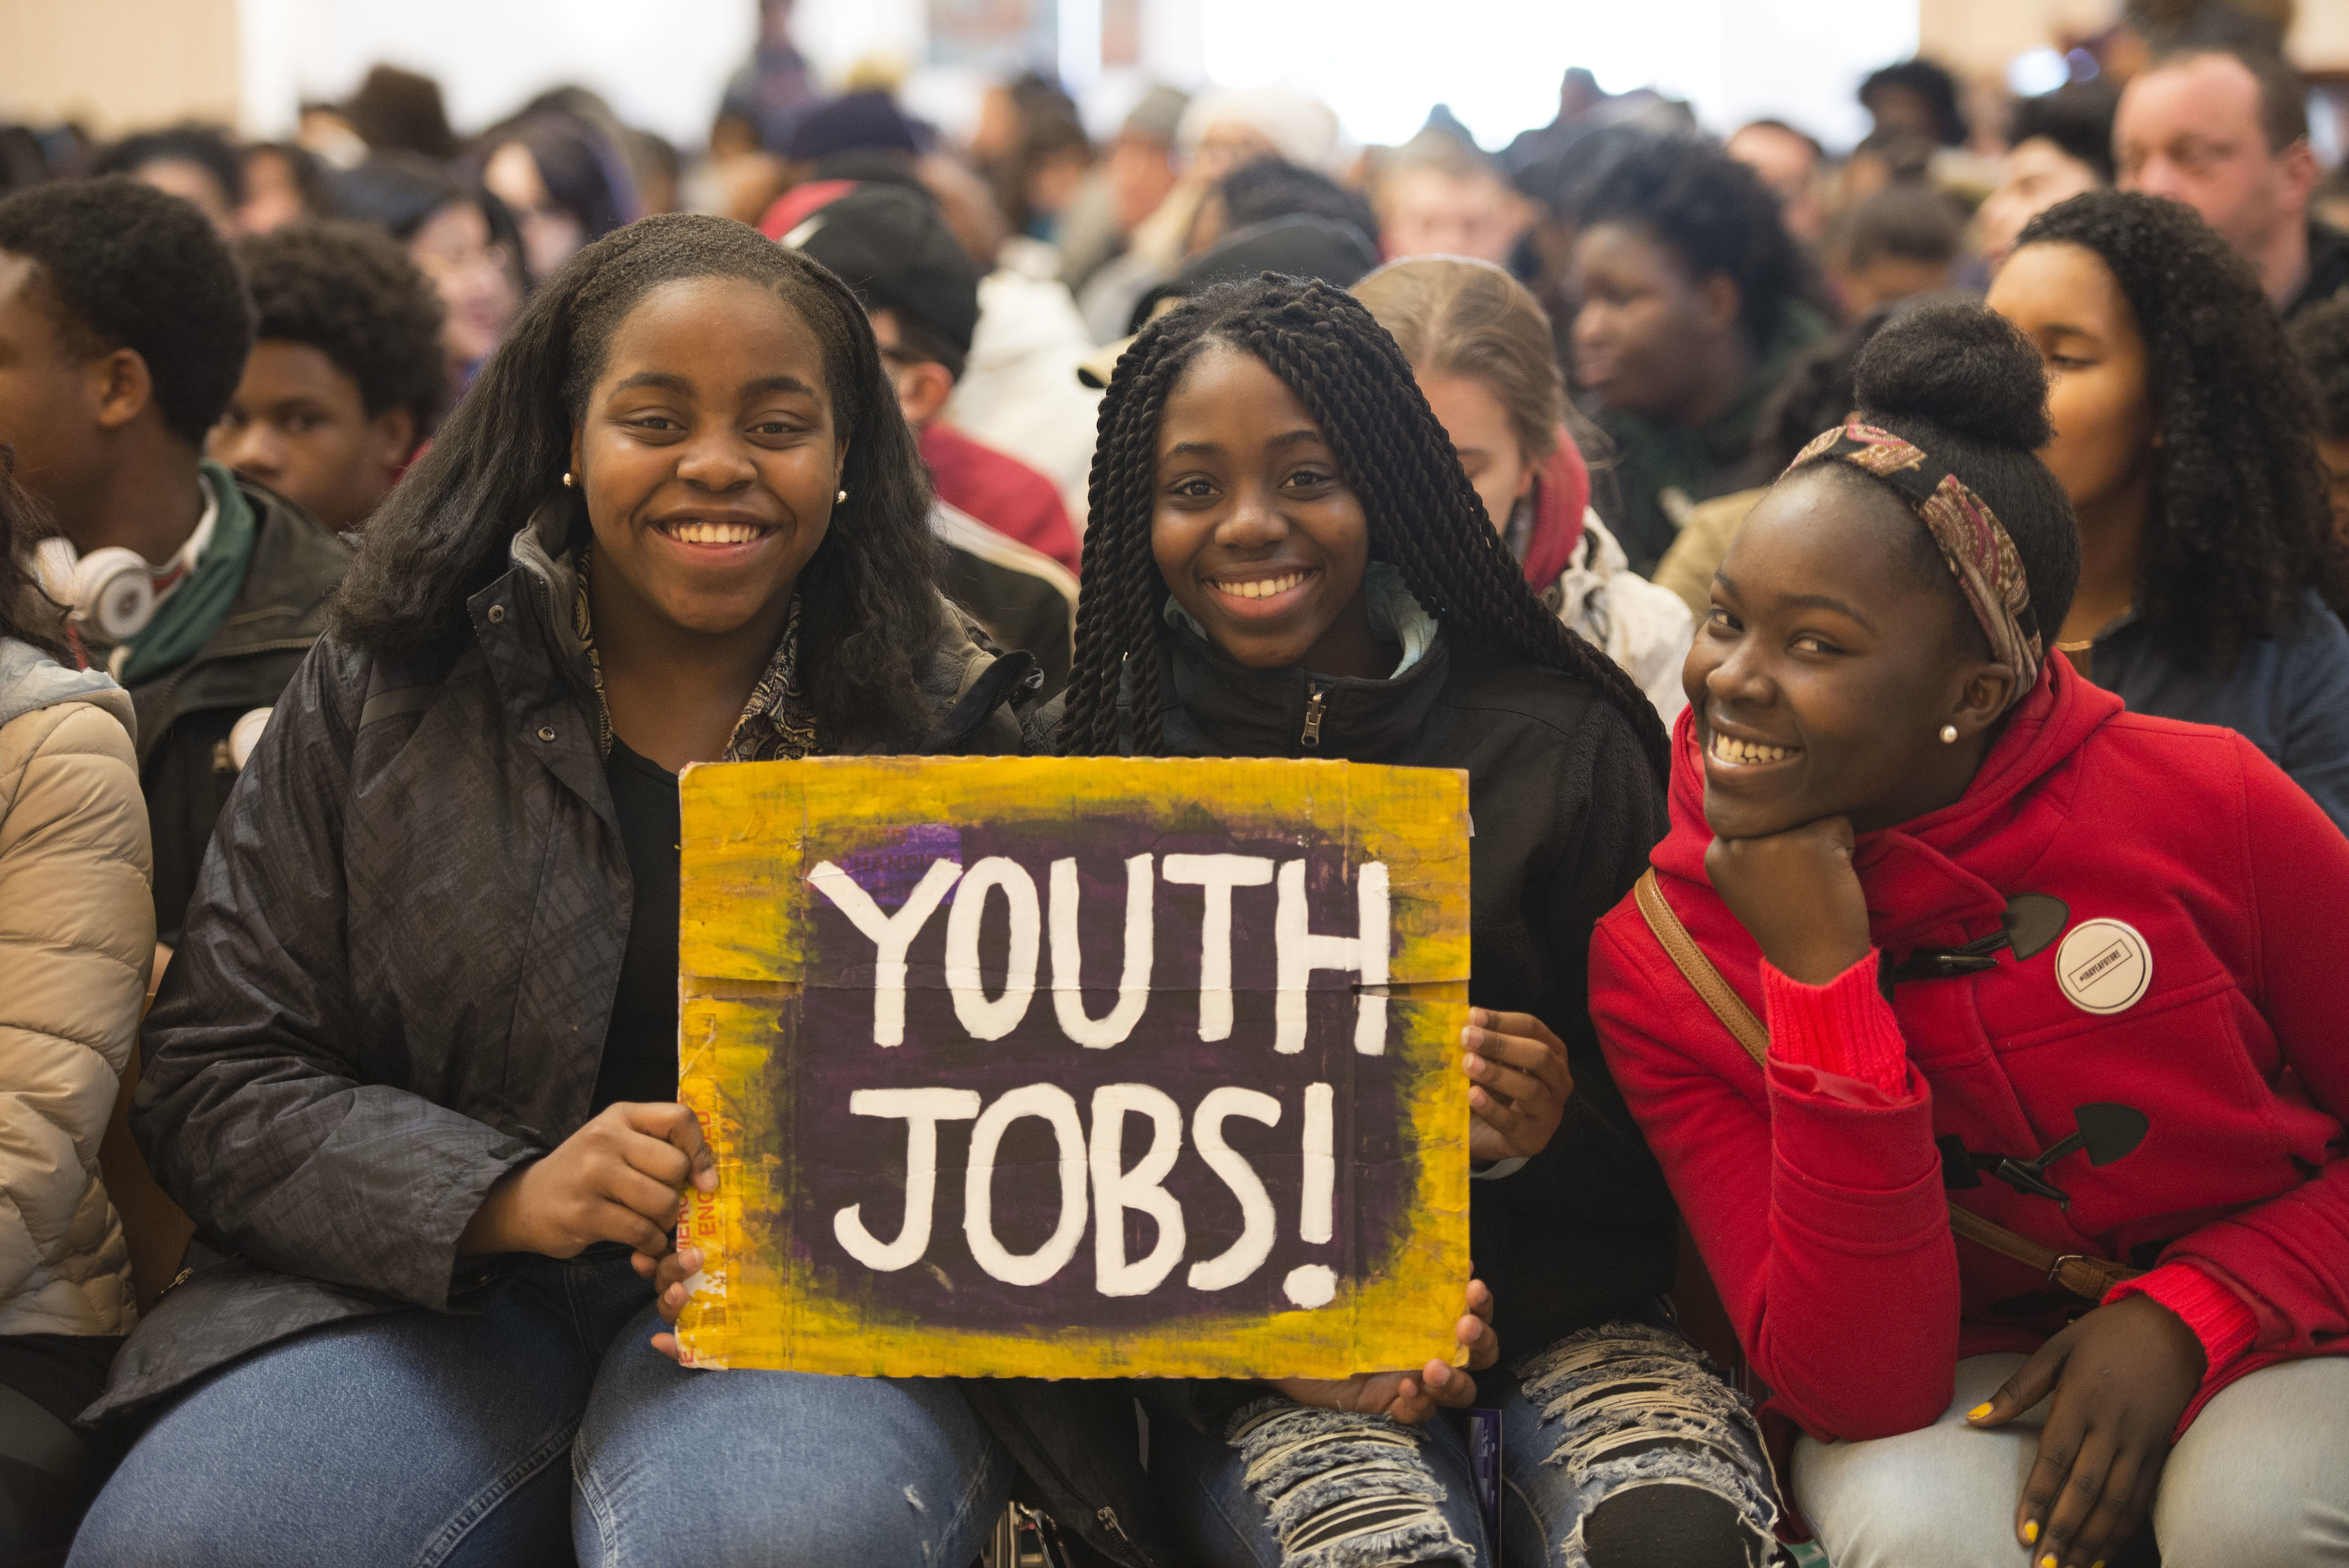 boston youth jobs protest